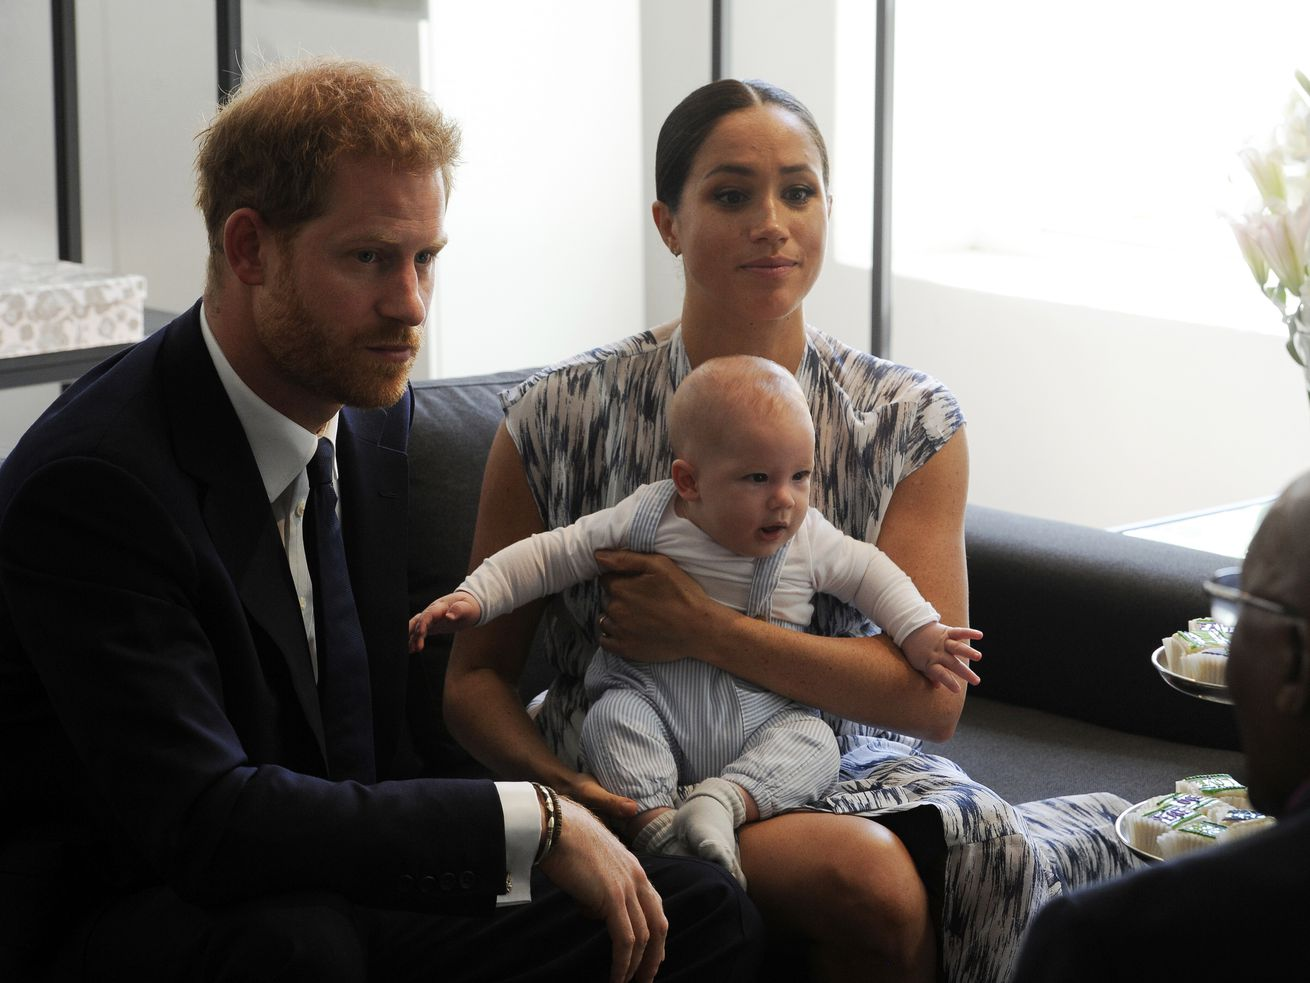 Meghan Markle opens up about challenges facing new mothers